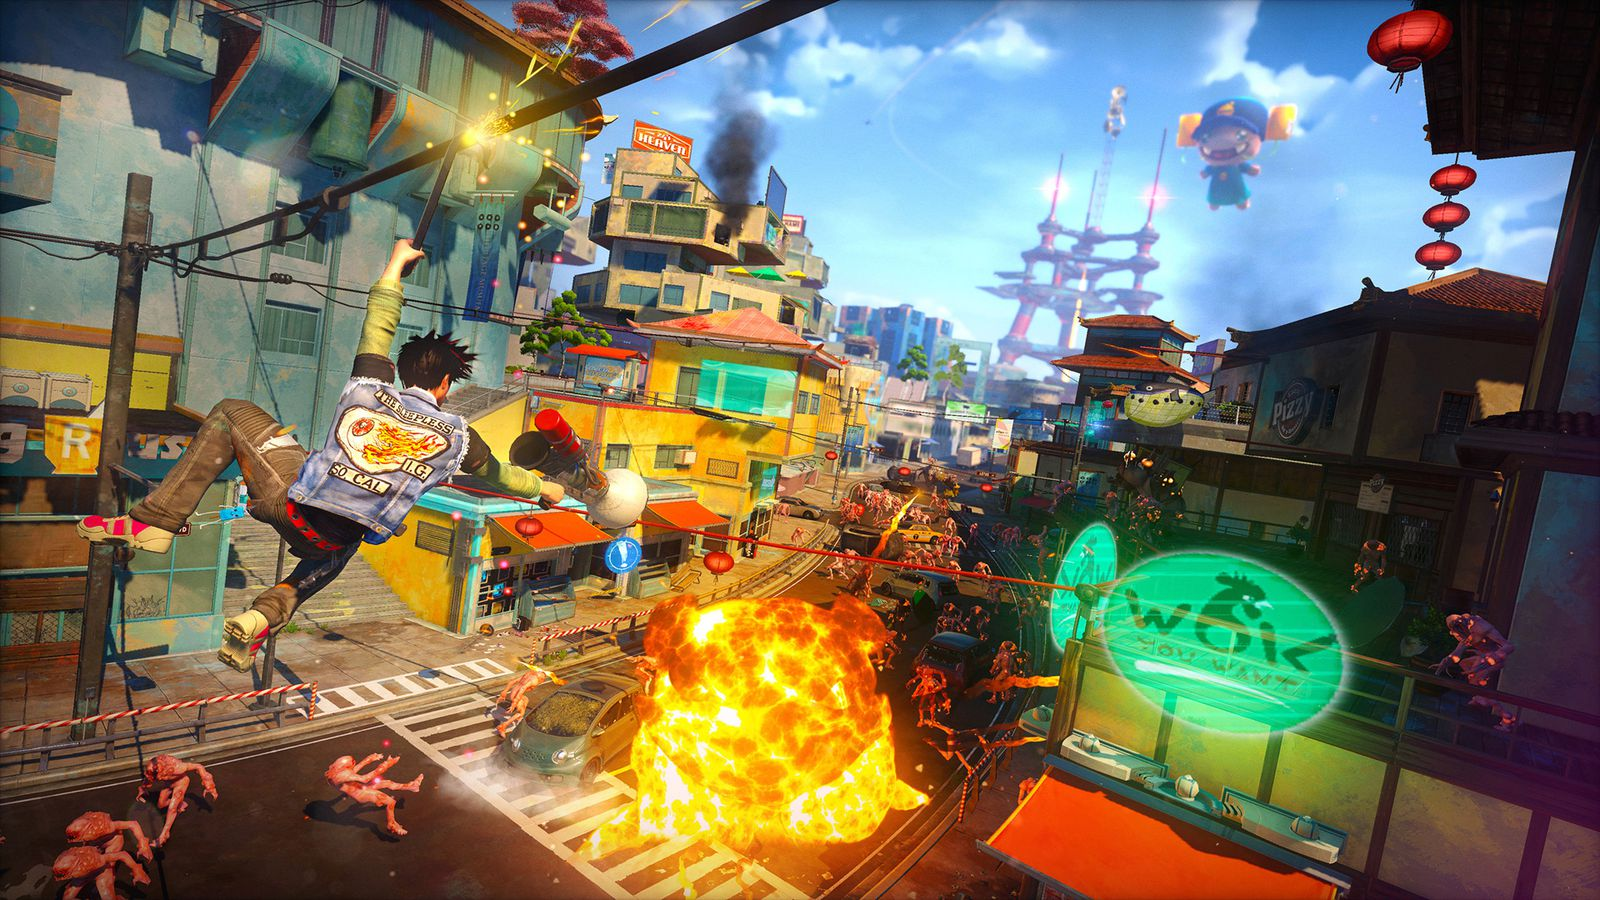 Full download fortnite battle royale usb mod menu on pc xbox one amp ps4 working fortnite mod menu trolling hacks video and games with. Sunset Overdrive turns the post-apocalypse into an energy